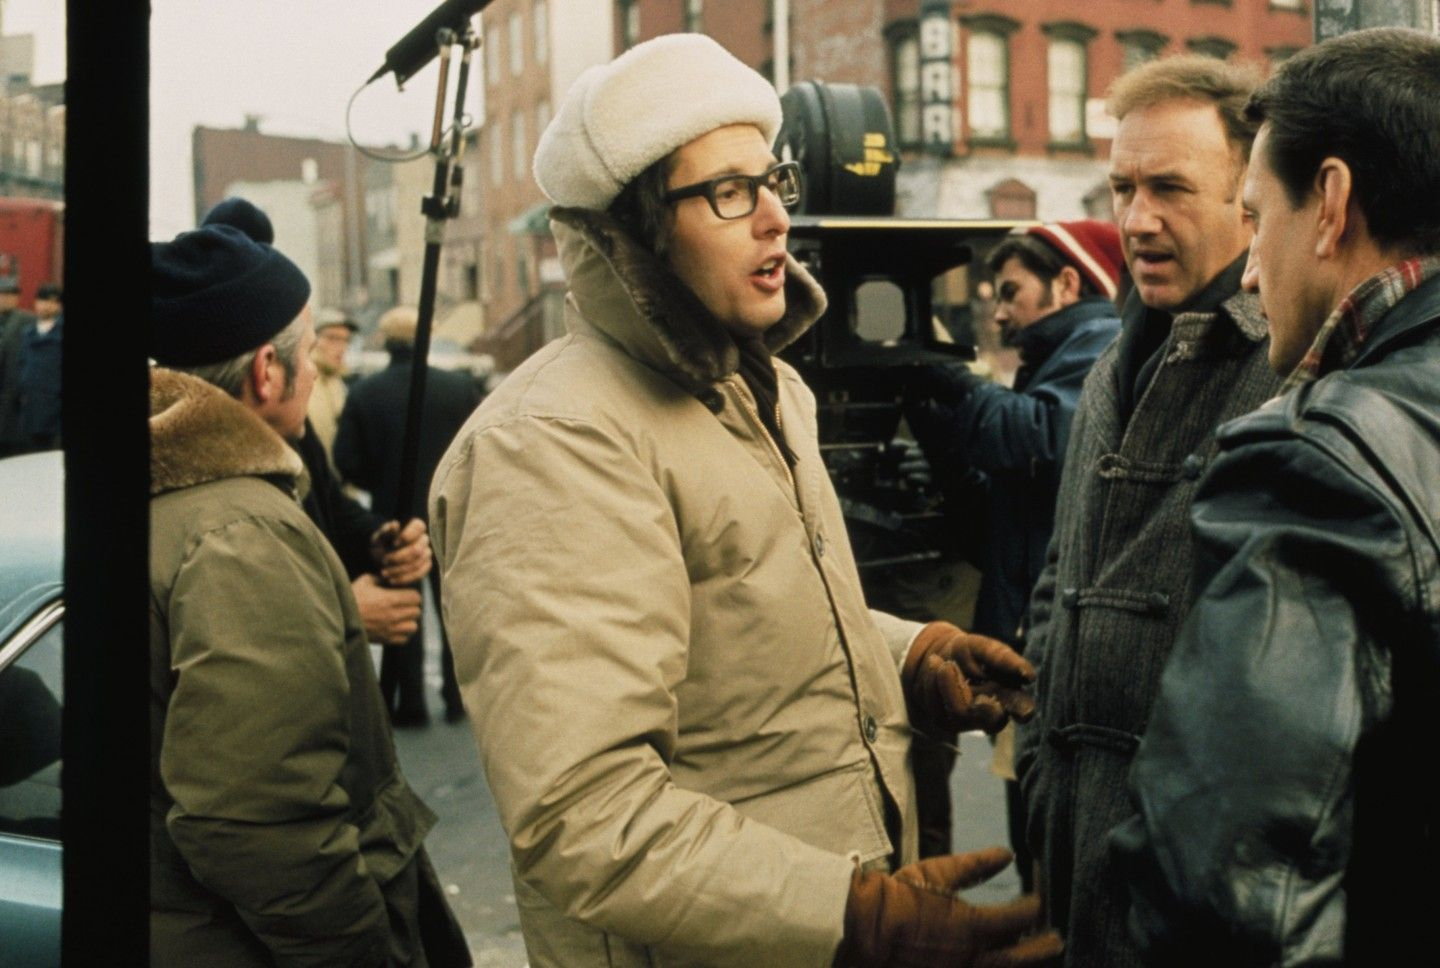 William Friedkin's 'The French Connection': The Seventies' Peak of Cinematic Excitement